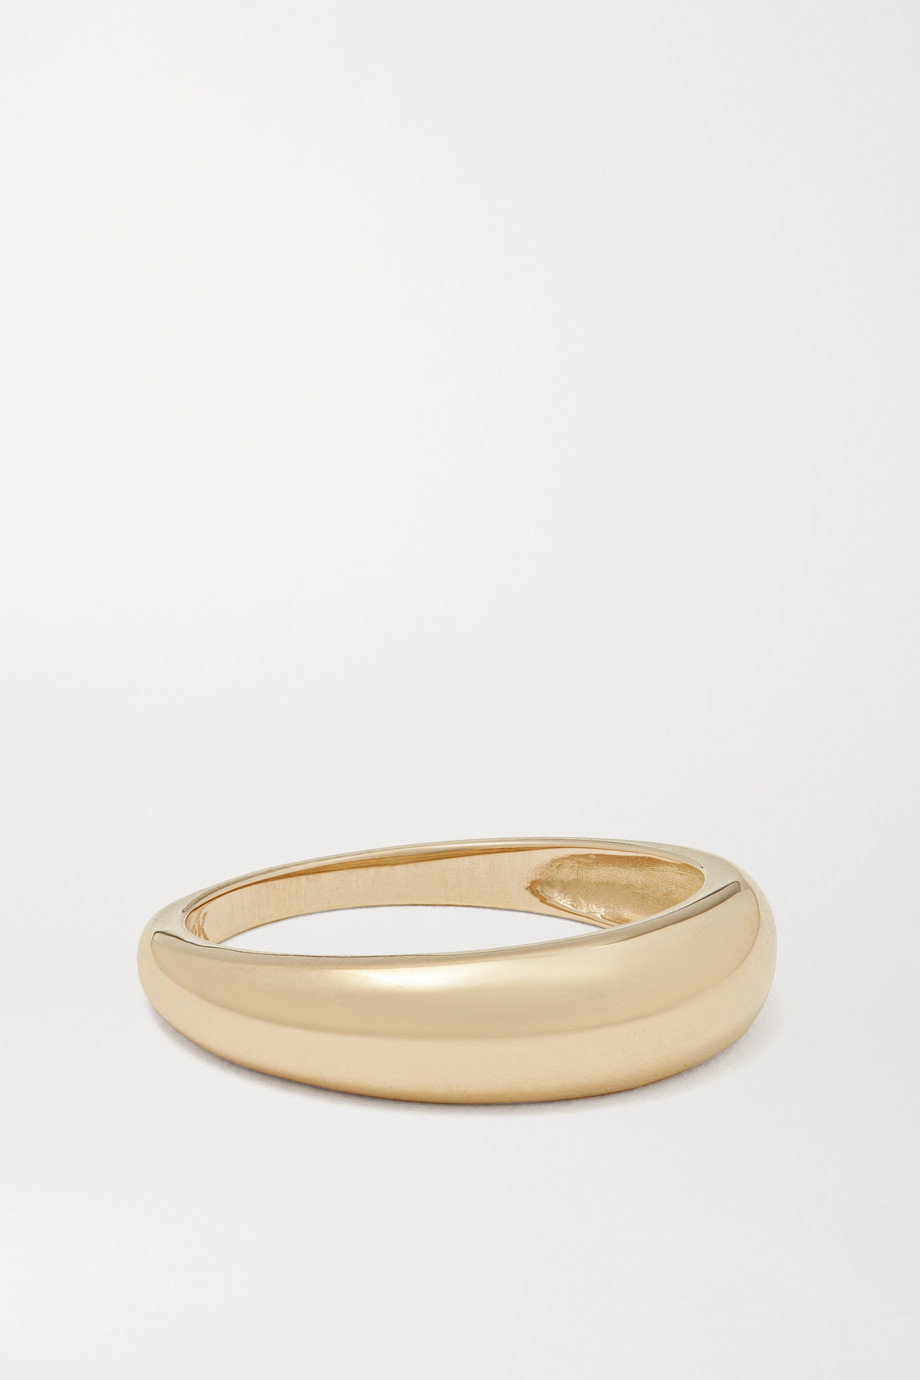 STONE AND STRAND Bombe 10-karat gold ring